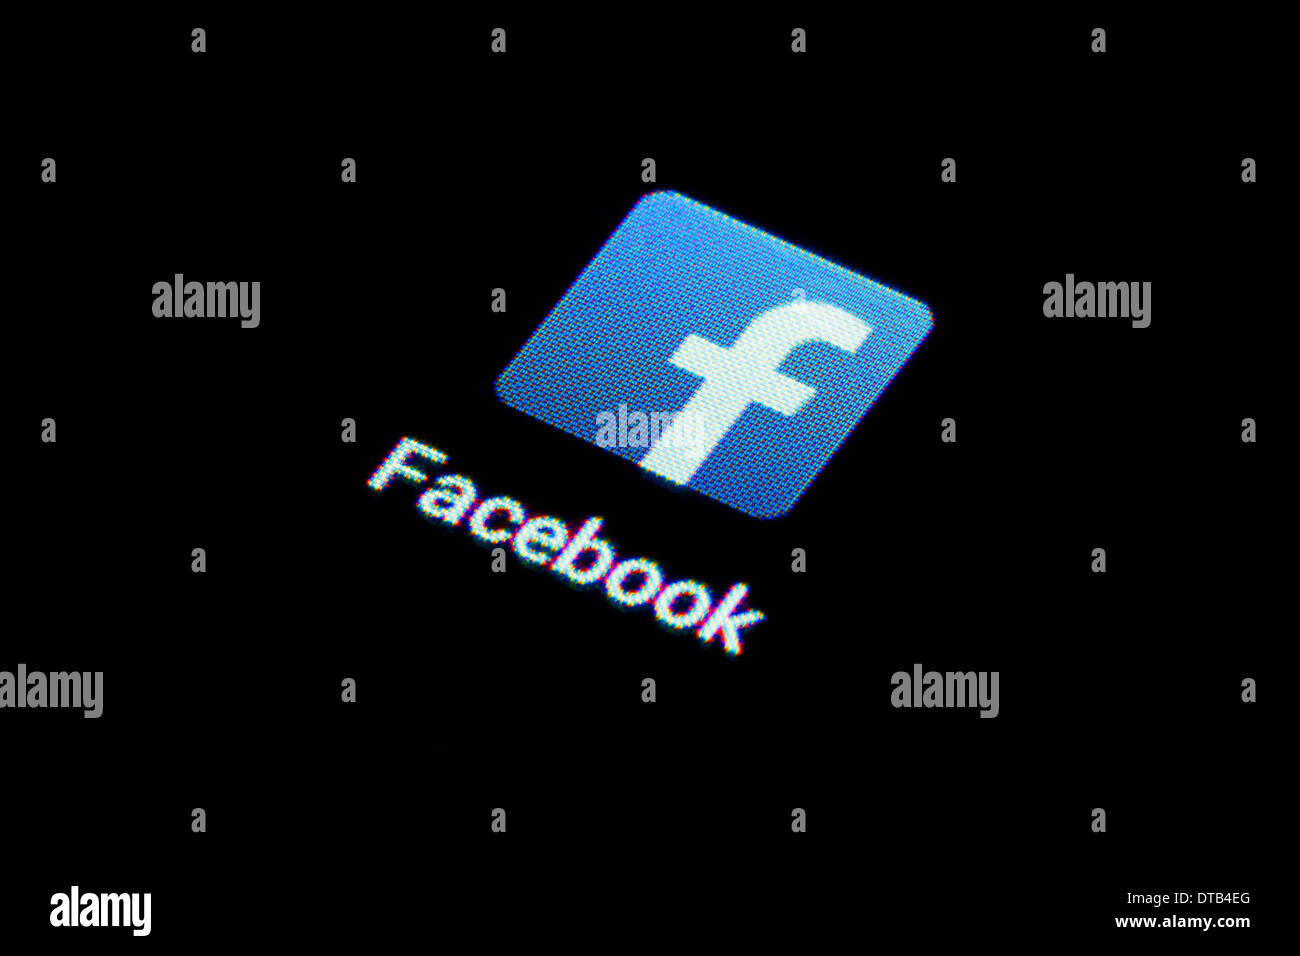 Berlin, Germany, App icon for Facebook on a smartphone - Stock Image